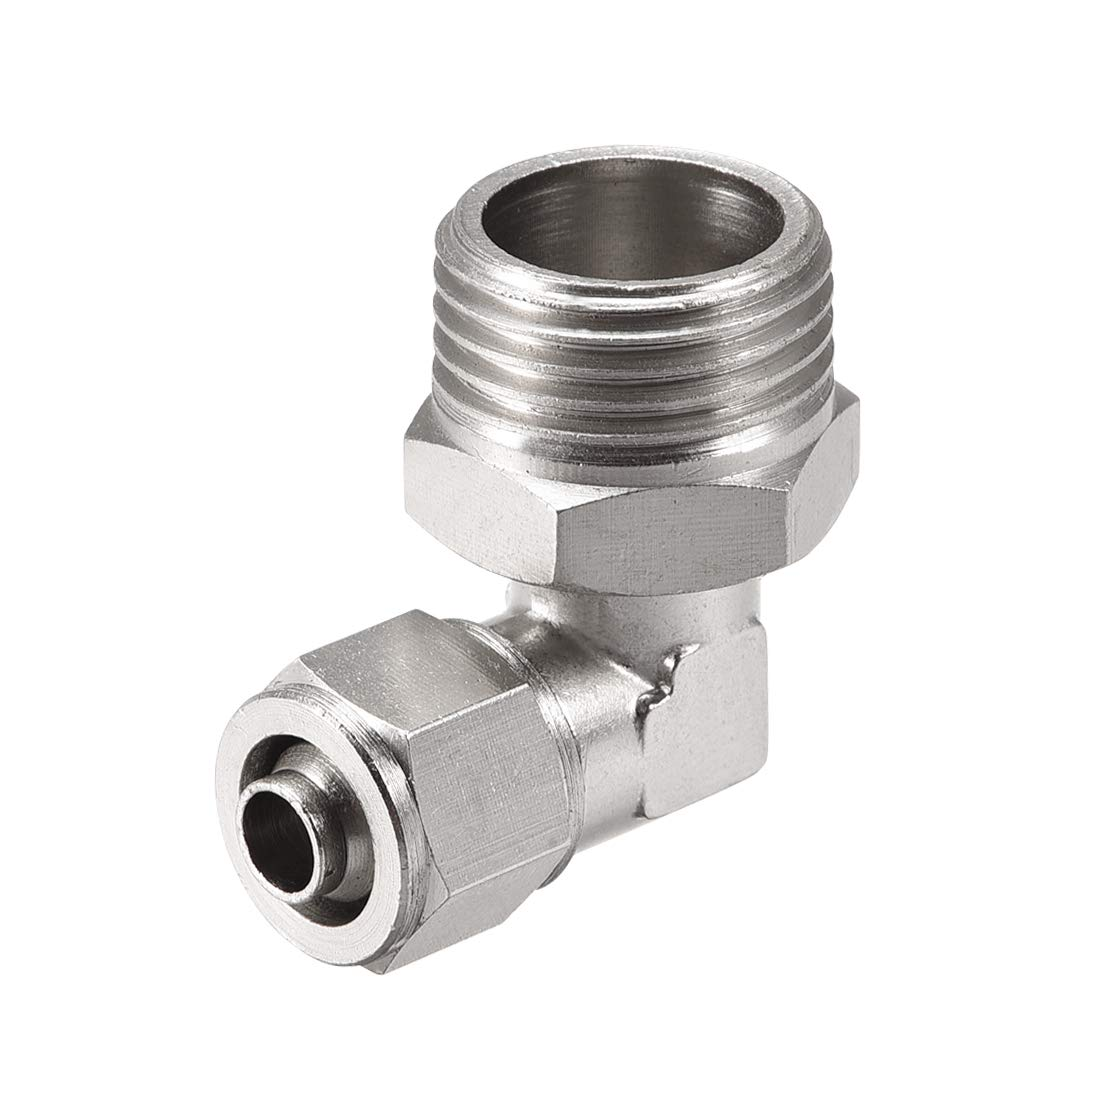 uxcell 10mm Tube OD to 1//2PT Male Thread Elbow Quick Fittings Nickel Plated Copper